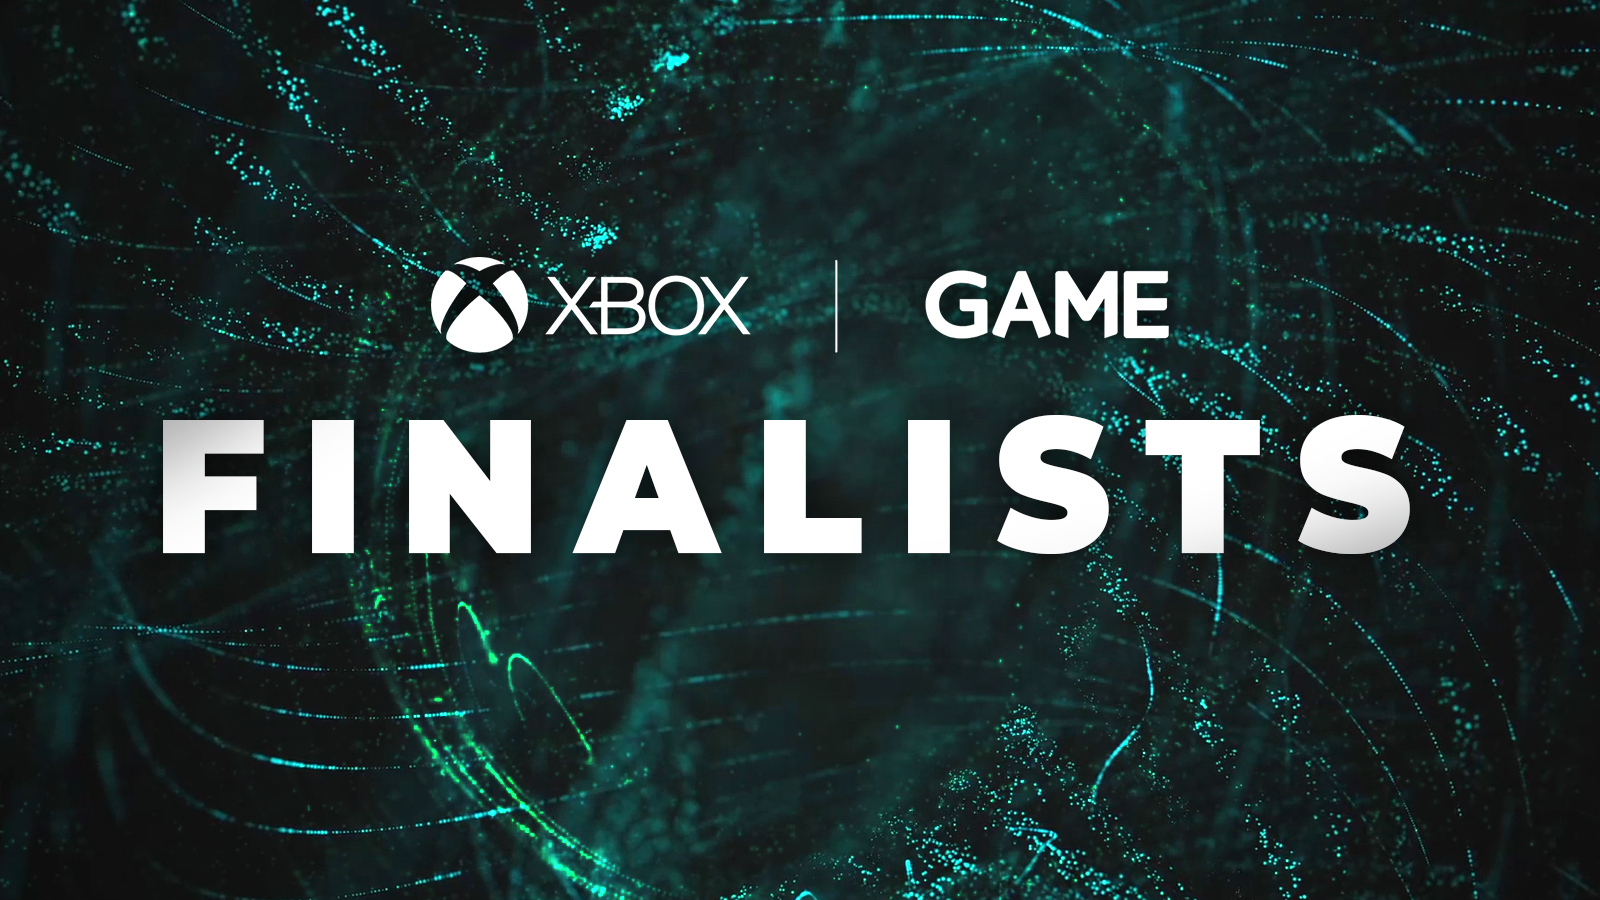 xbox game next gaming influencer finalists